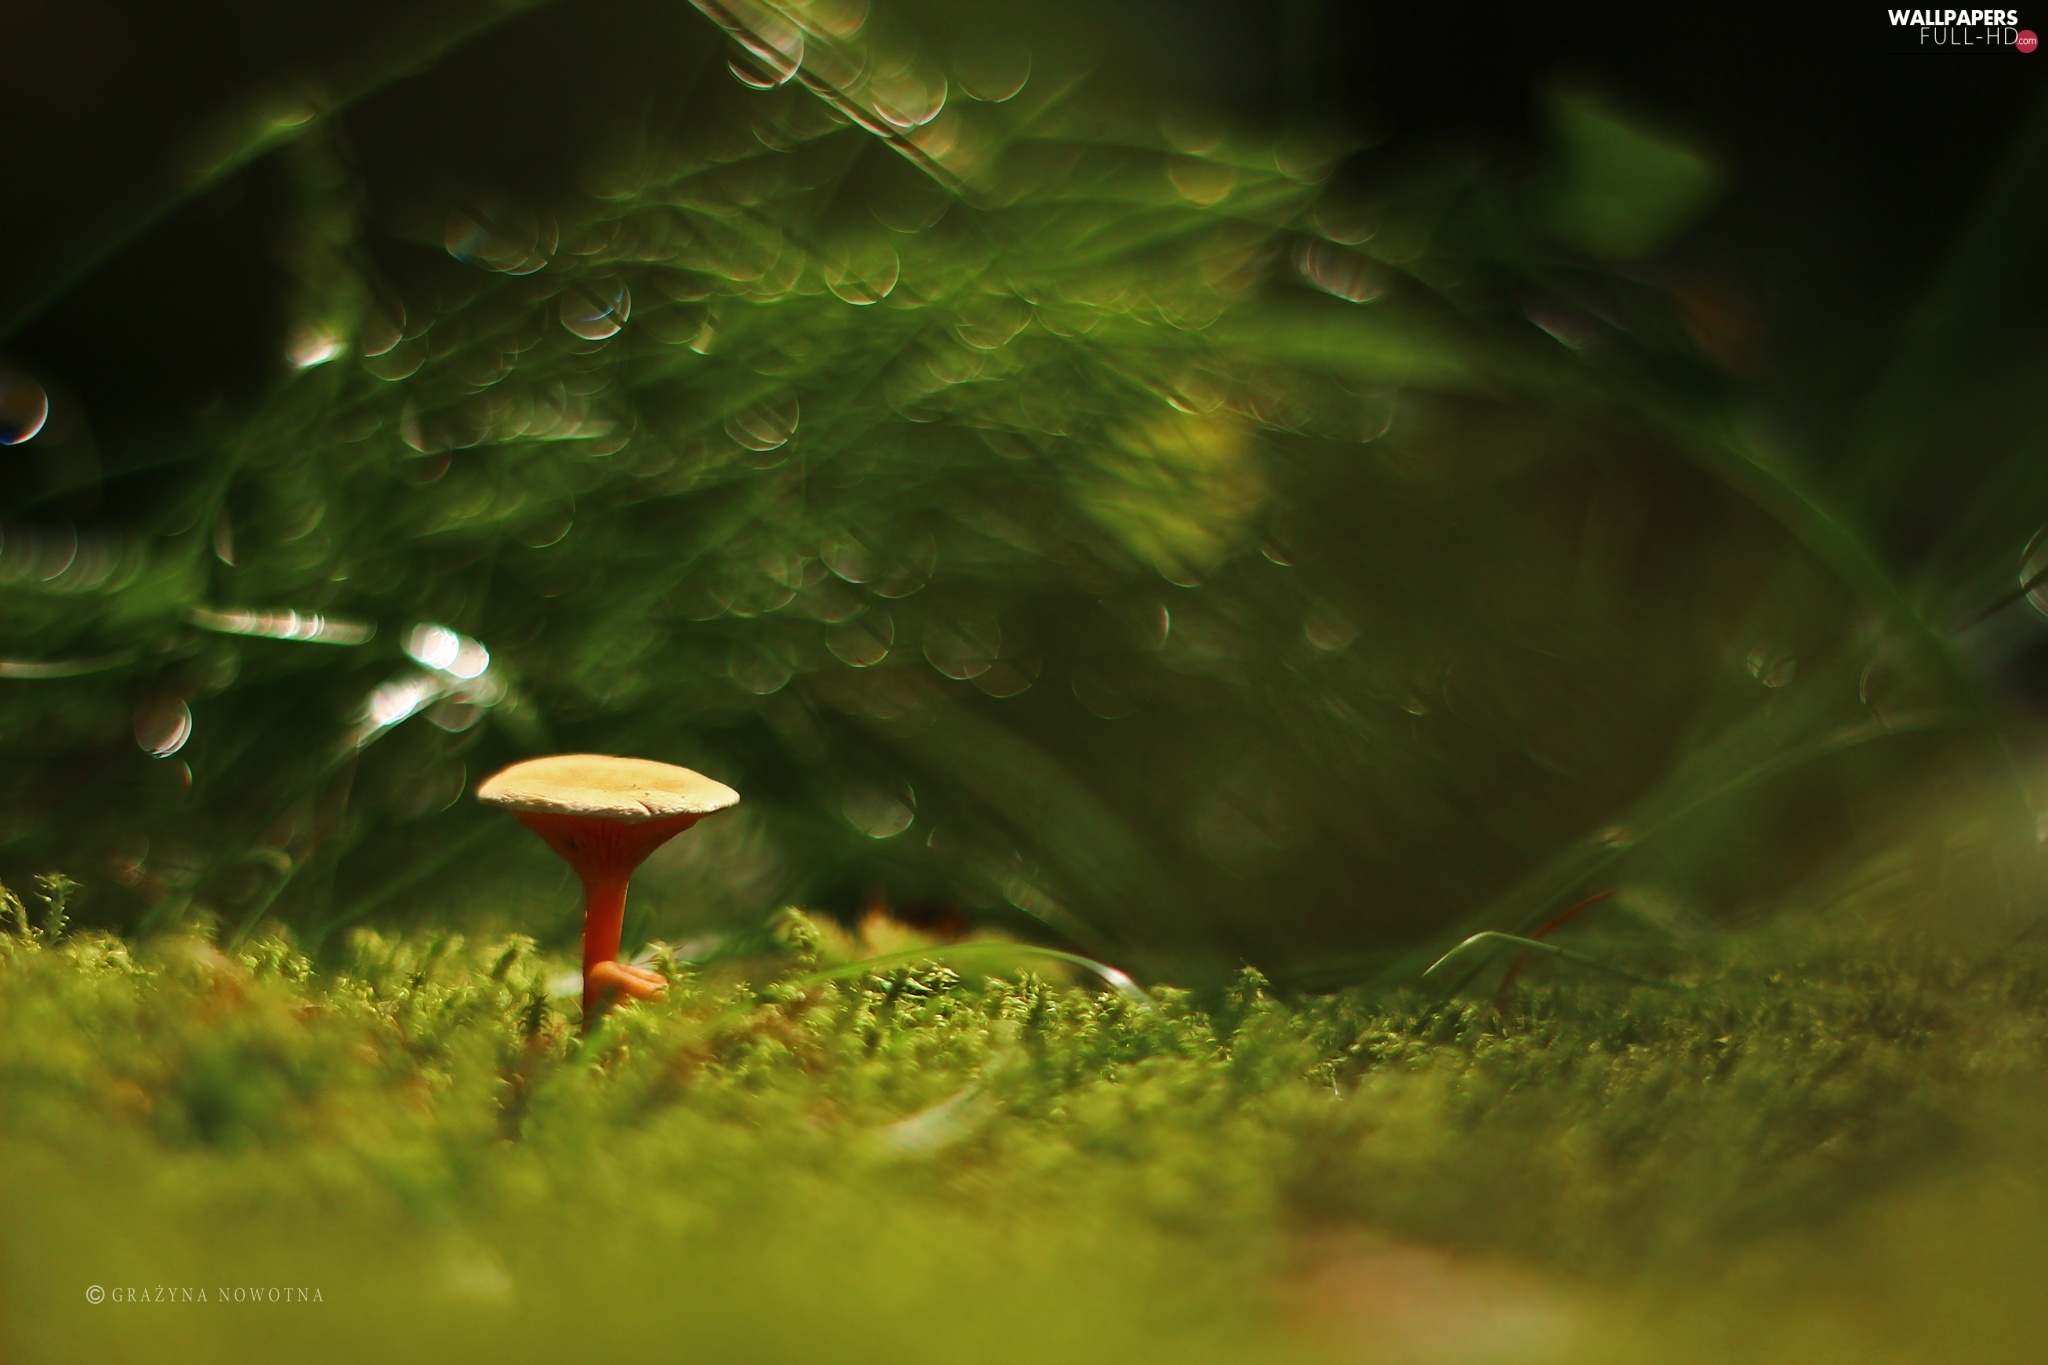 Moss, Bokeh, Mushrooms